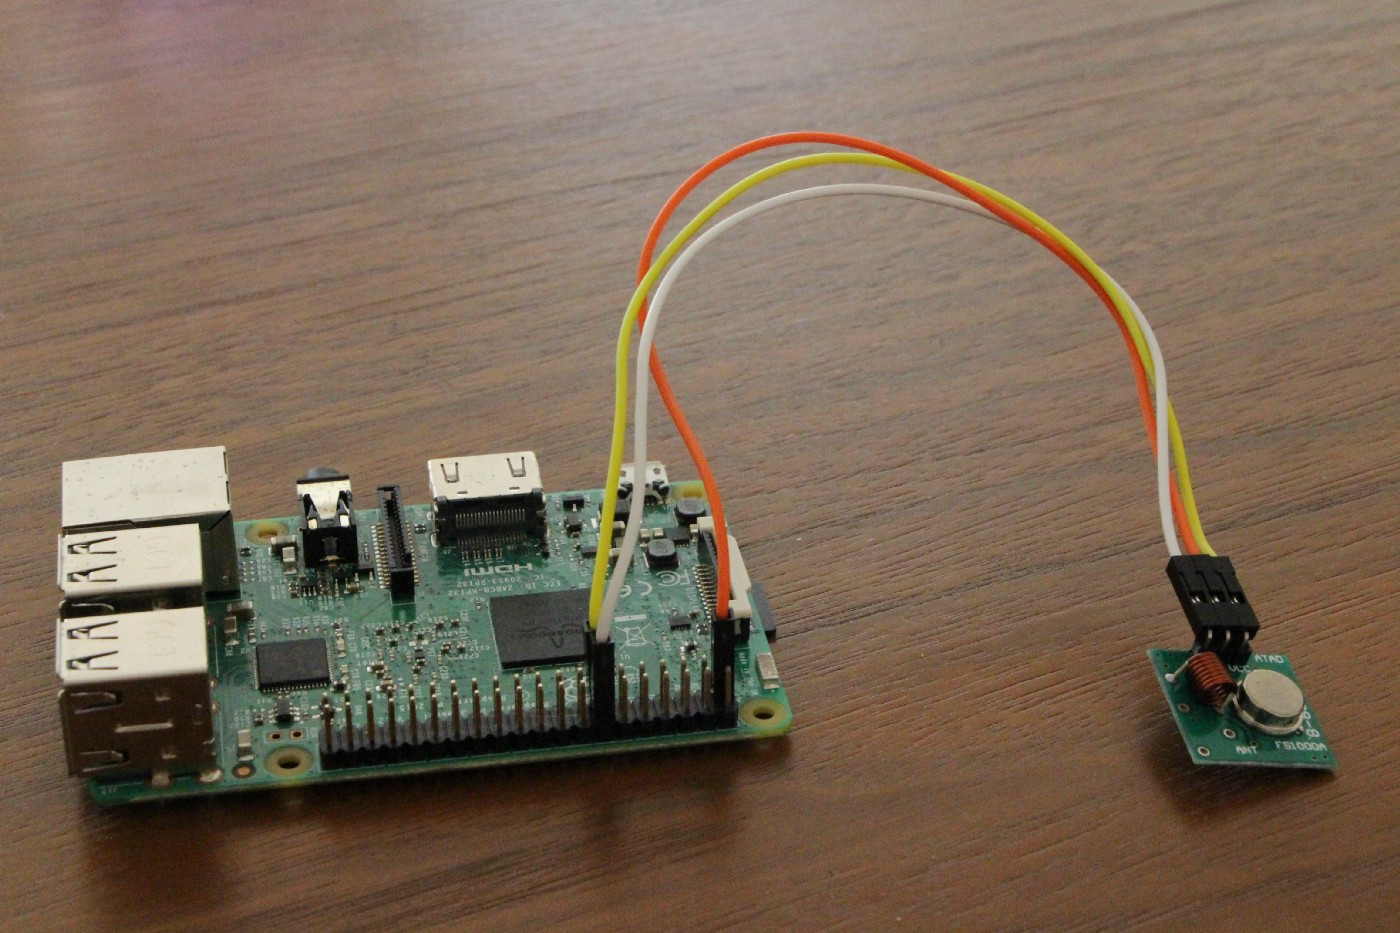 Voice controlled lights with a Raspberry Pi and Snips